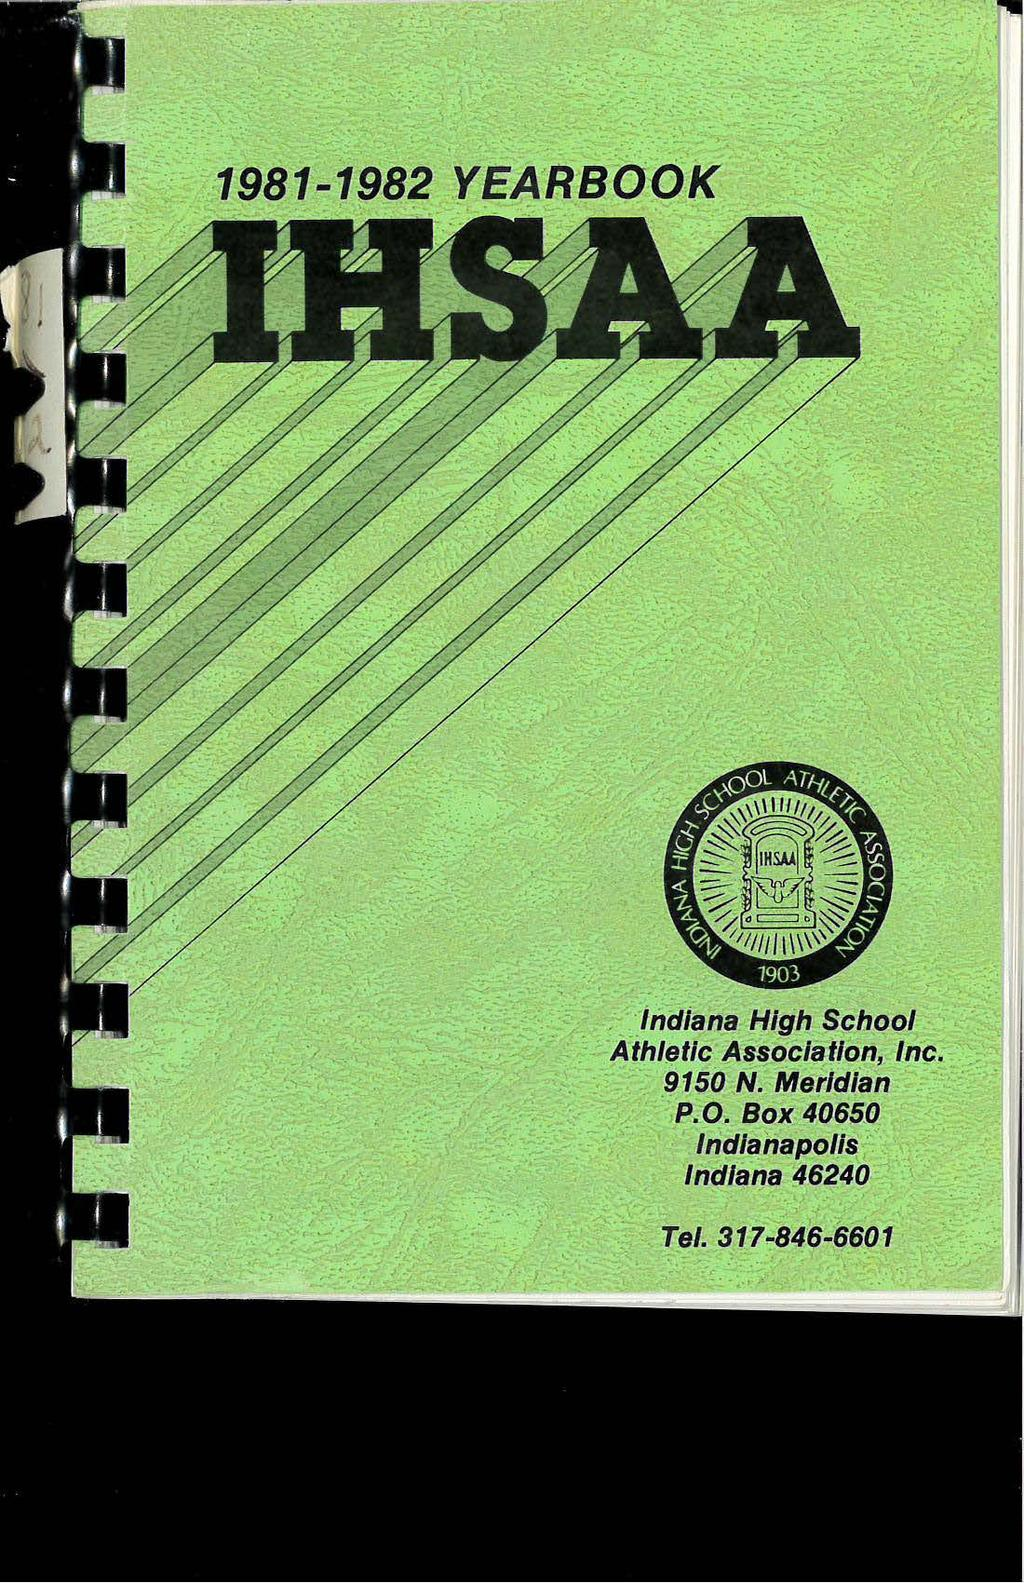 1981-1982 YEARBOOi<,- ~ I., Indiana High School Athletic Association, Inc.